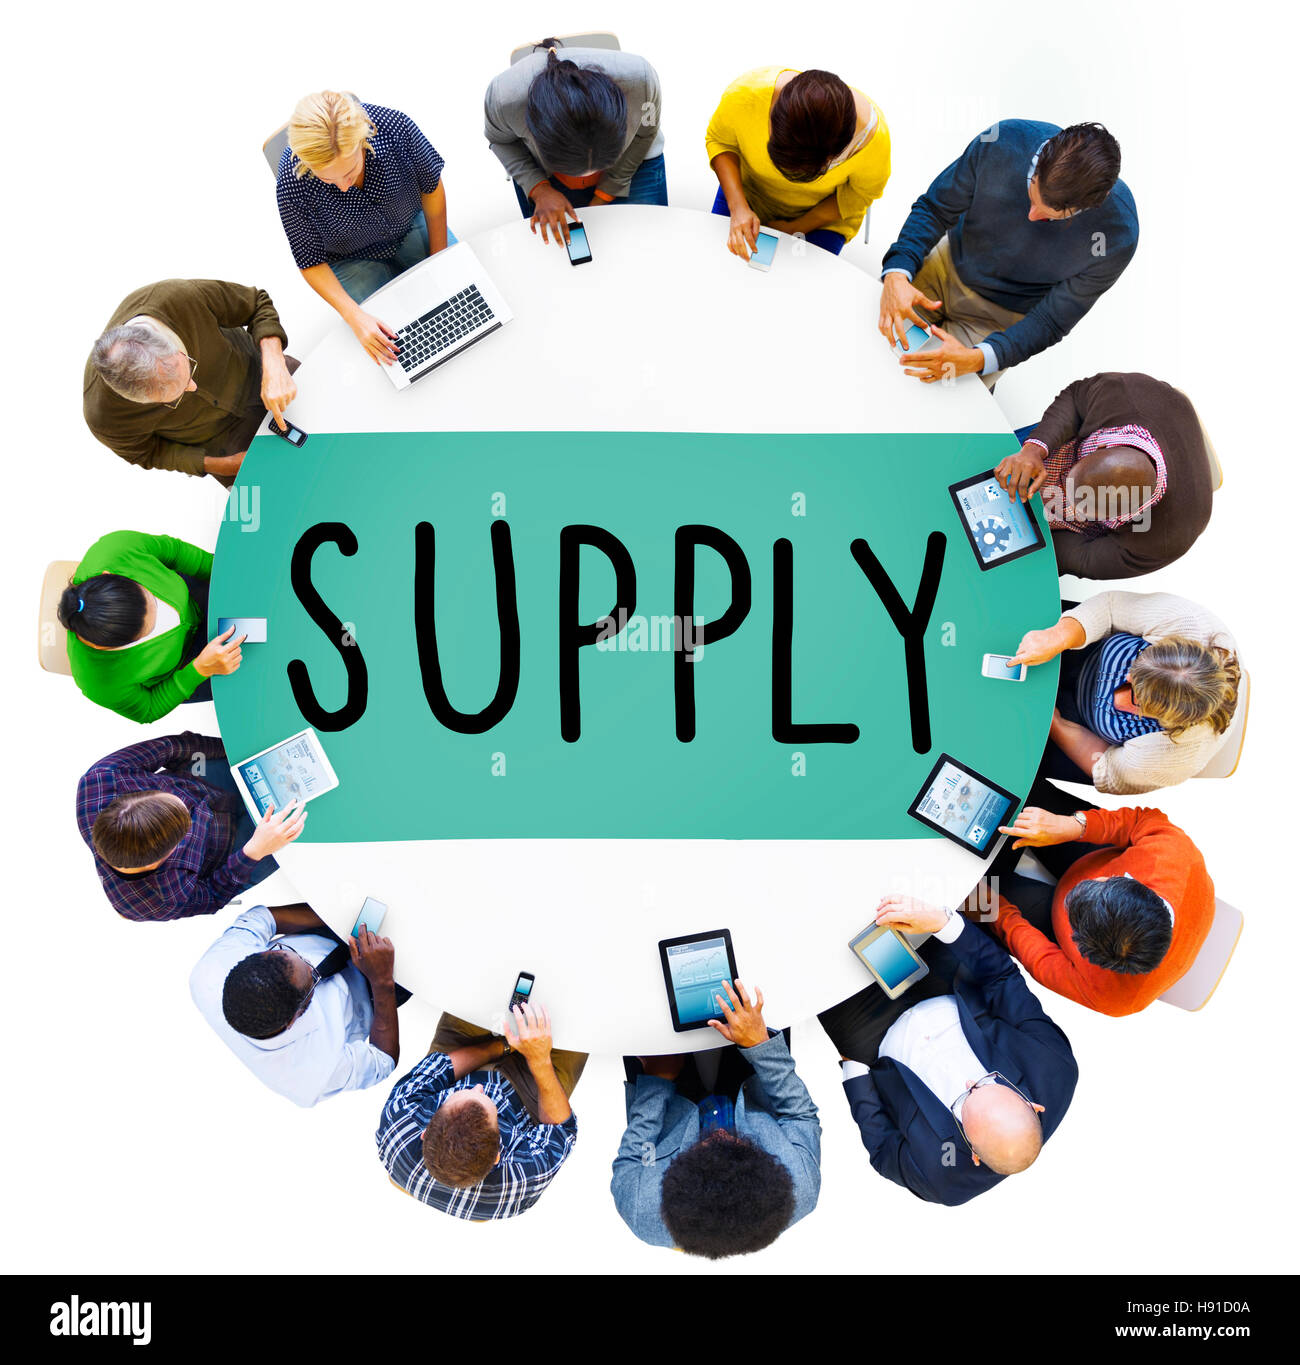 Supply Stock Marketing Logistic Distribution Business Concept - Stock Image